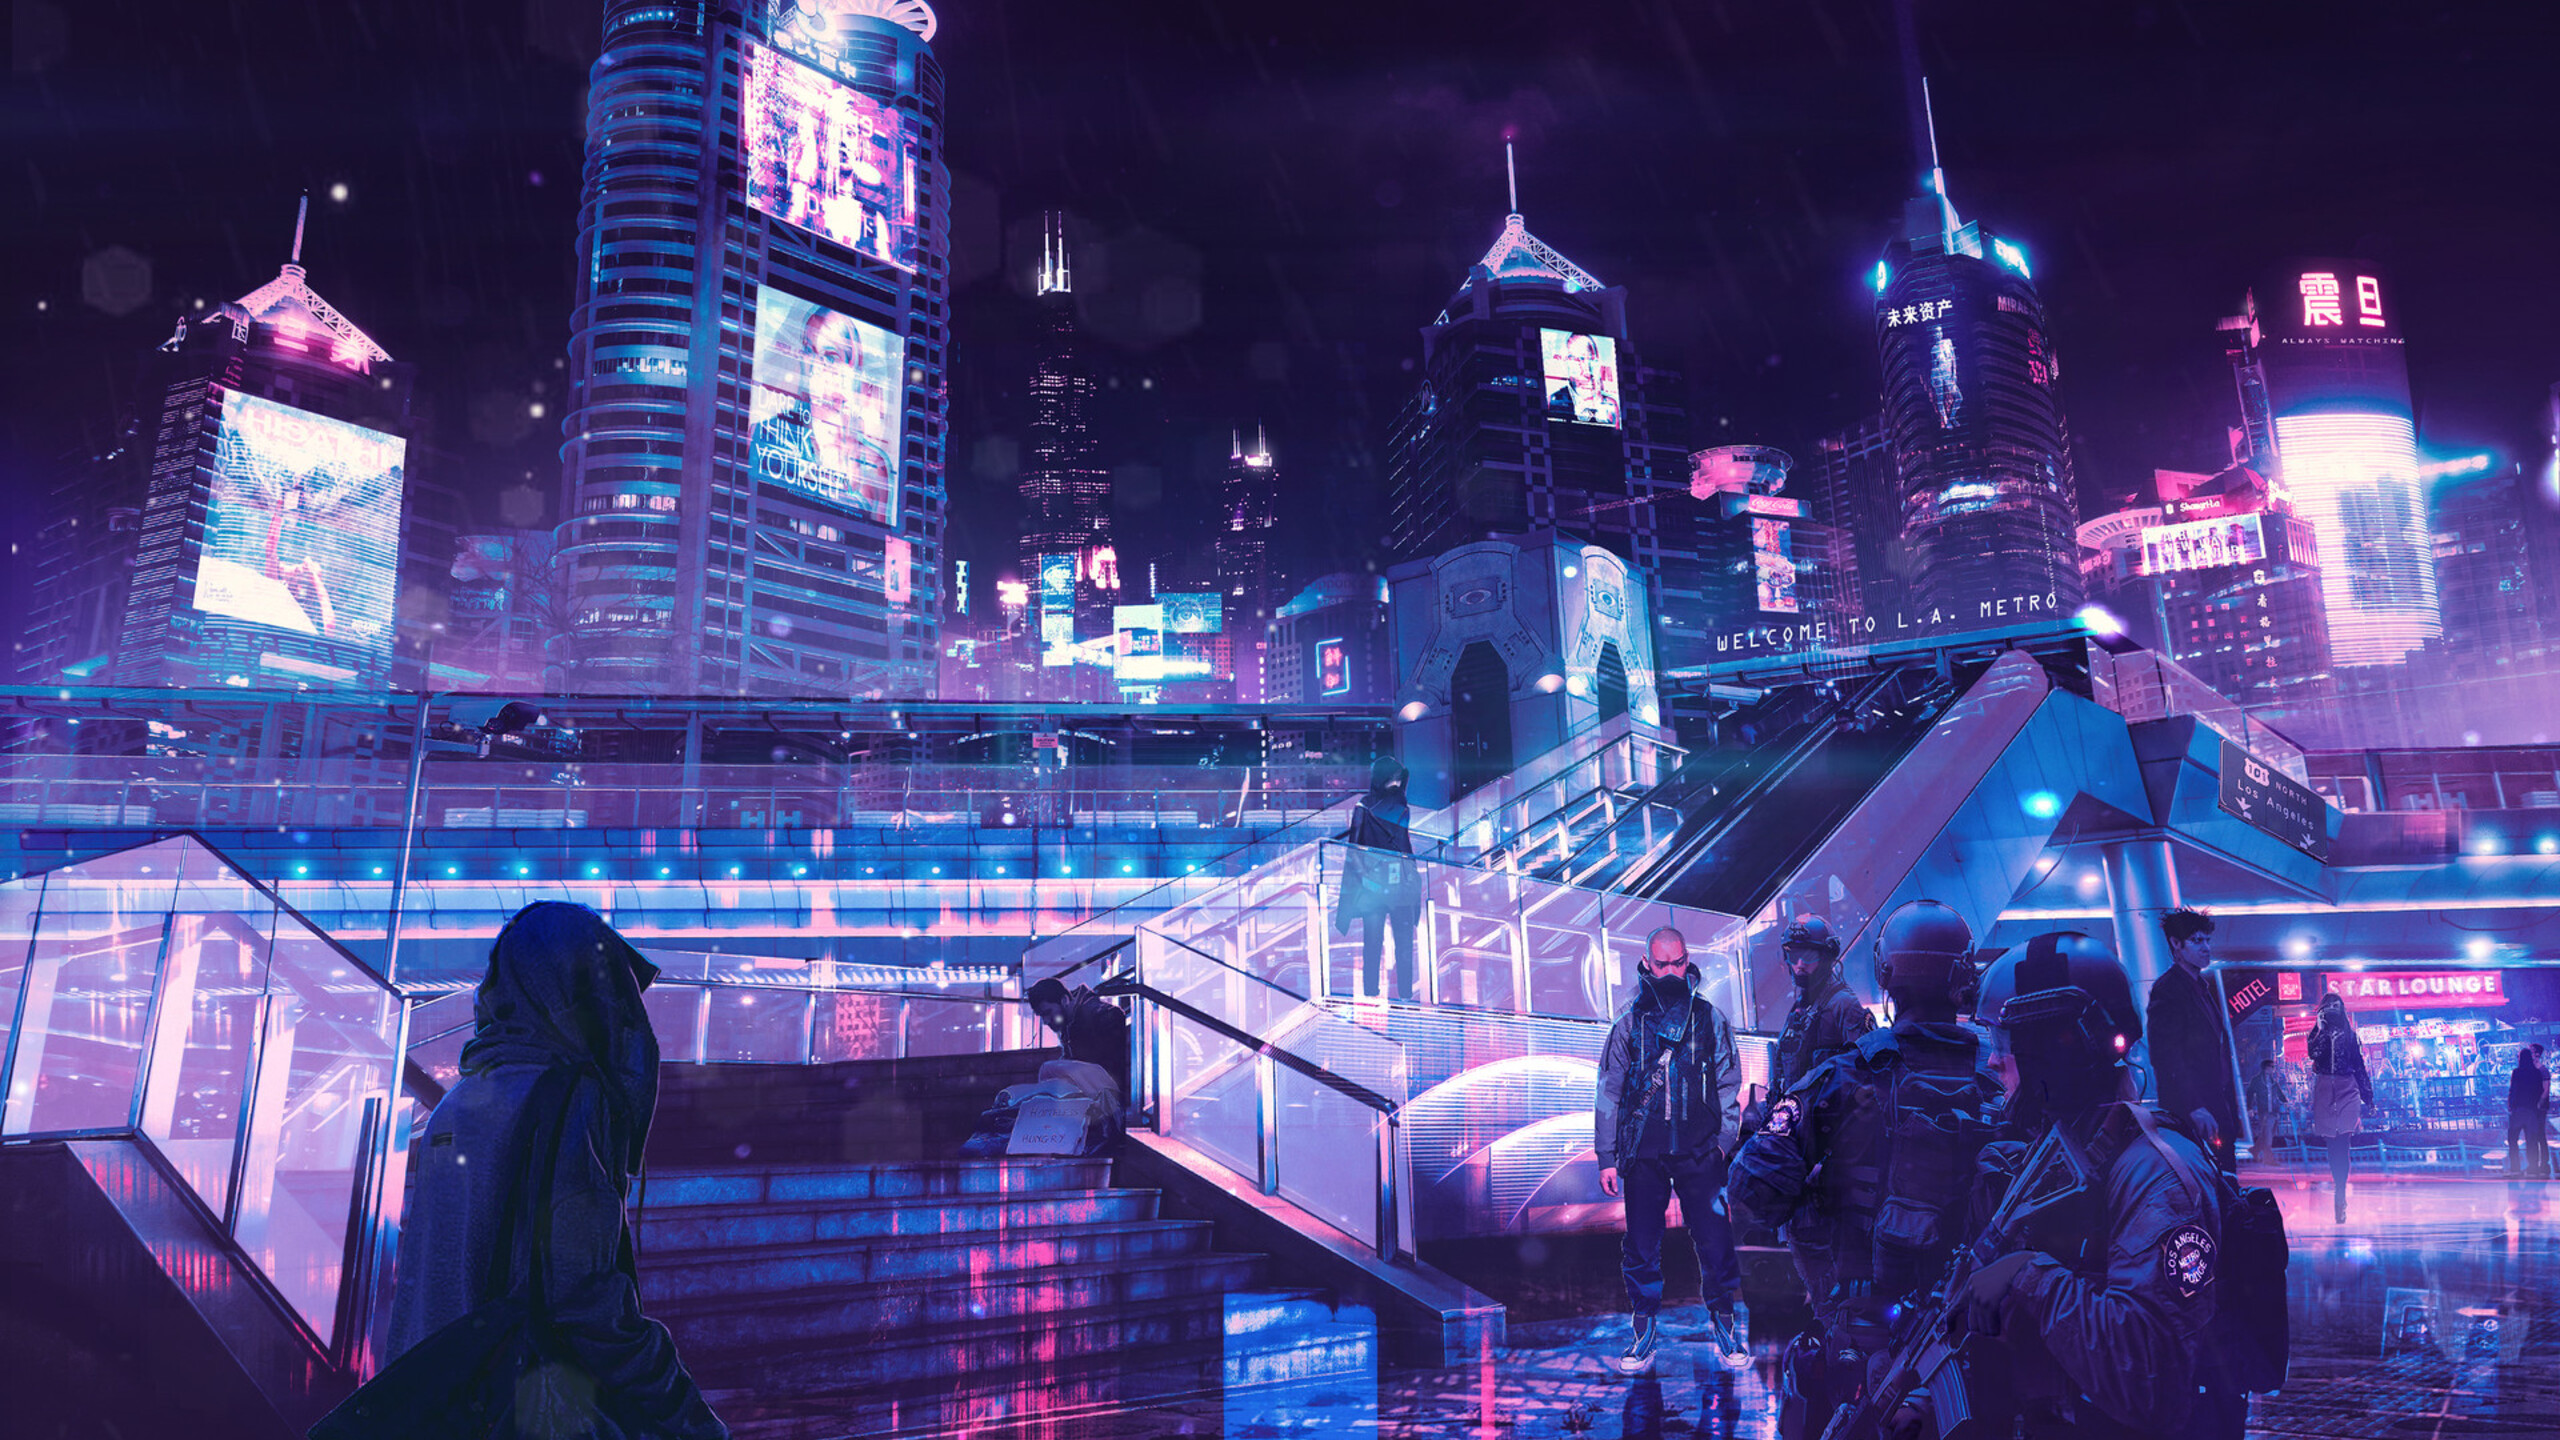 2560x1440 cyberpunk neon city 1440p resolution hd 4k